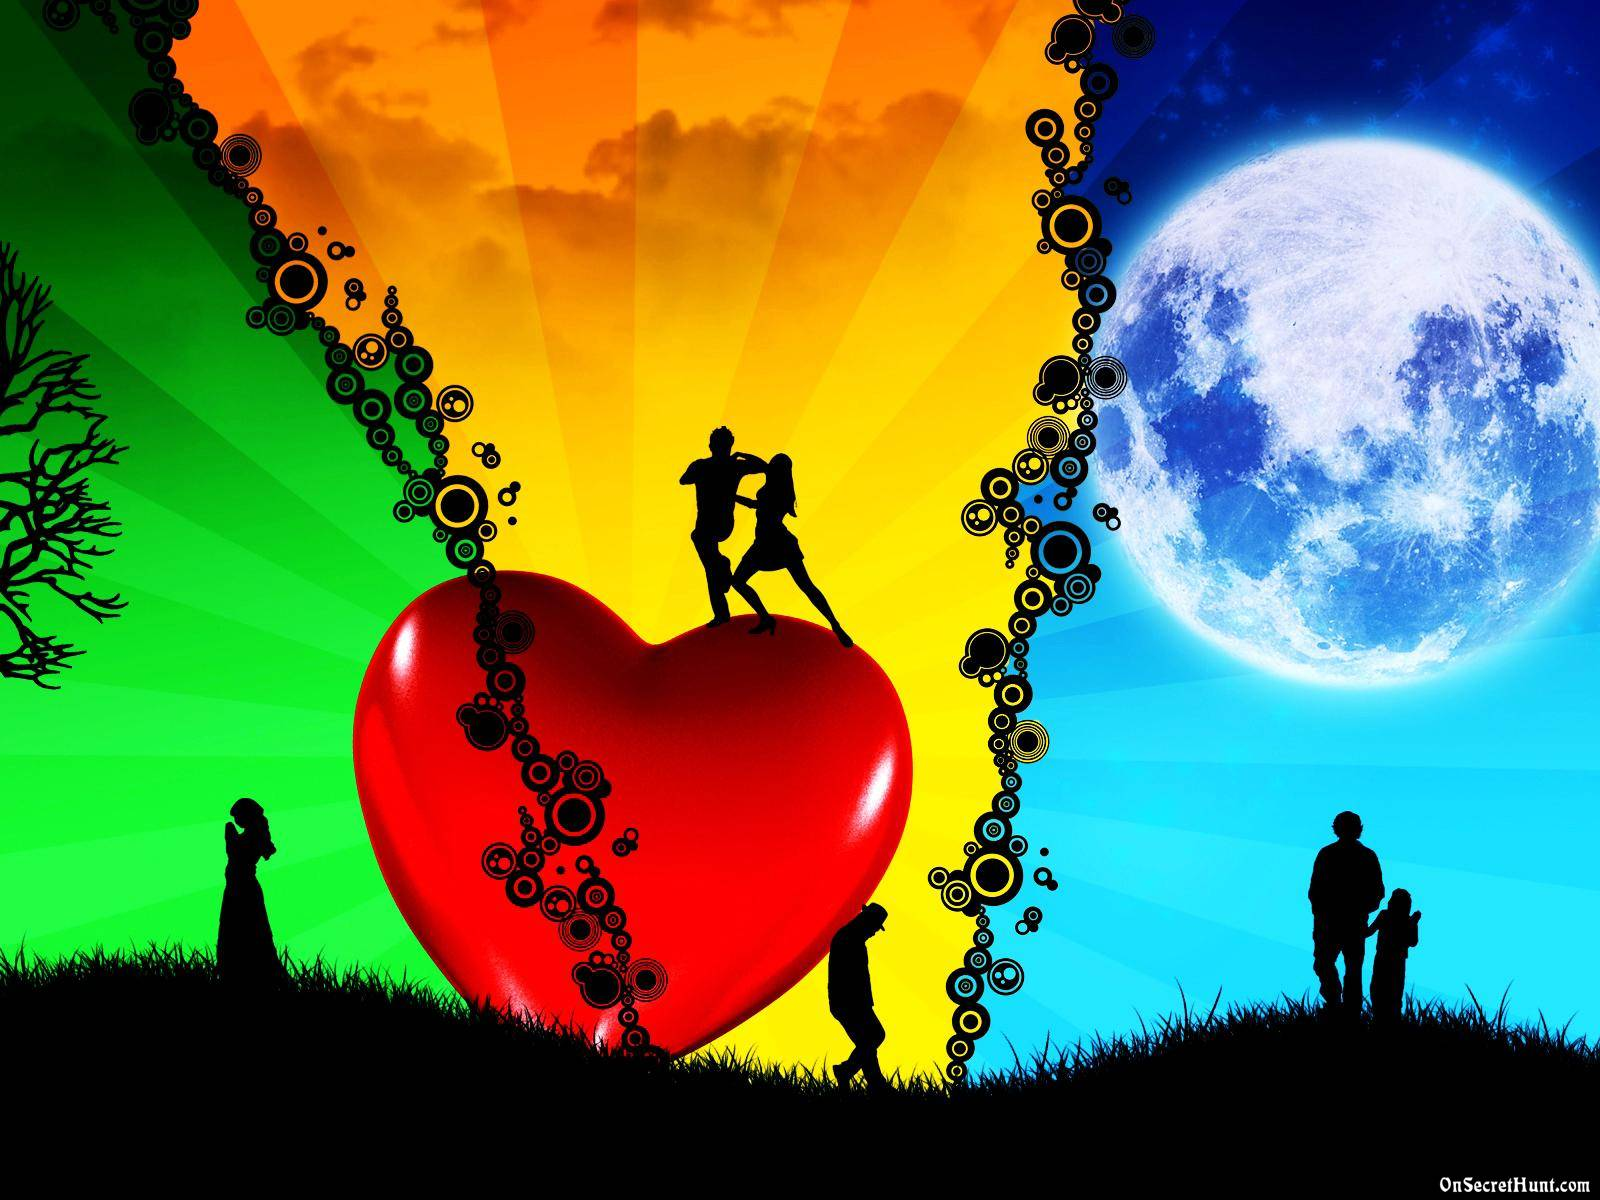 Beautiful Love Wallpaper For Desktop : Love Wallpapers 3D - Wallpaper cave